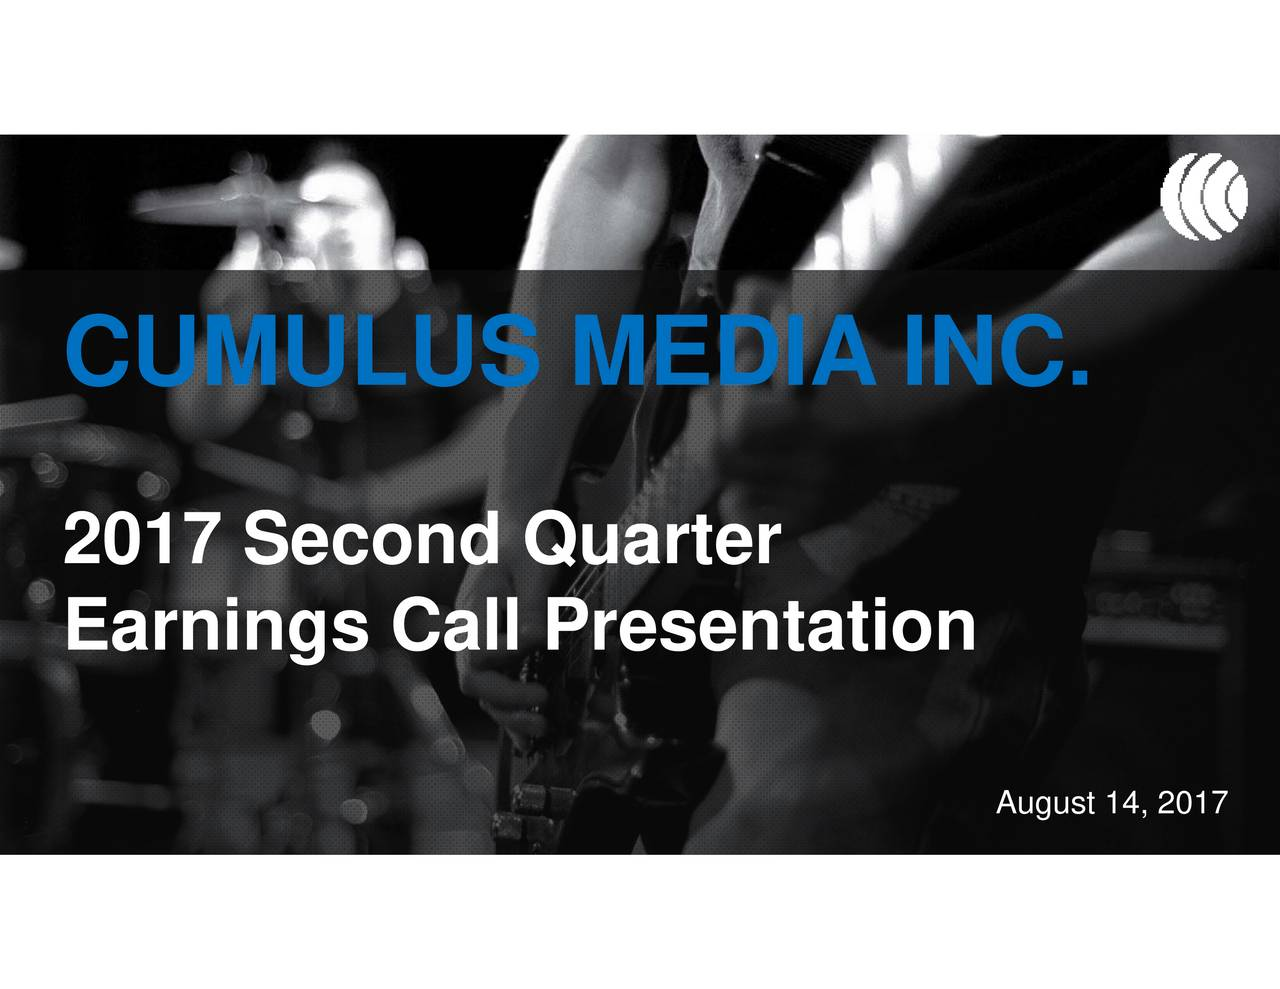 Earnings Call Slides: Cumulus Media Inc. 2017 Q2